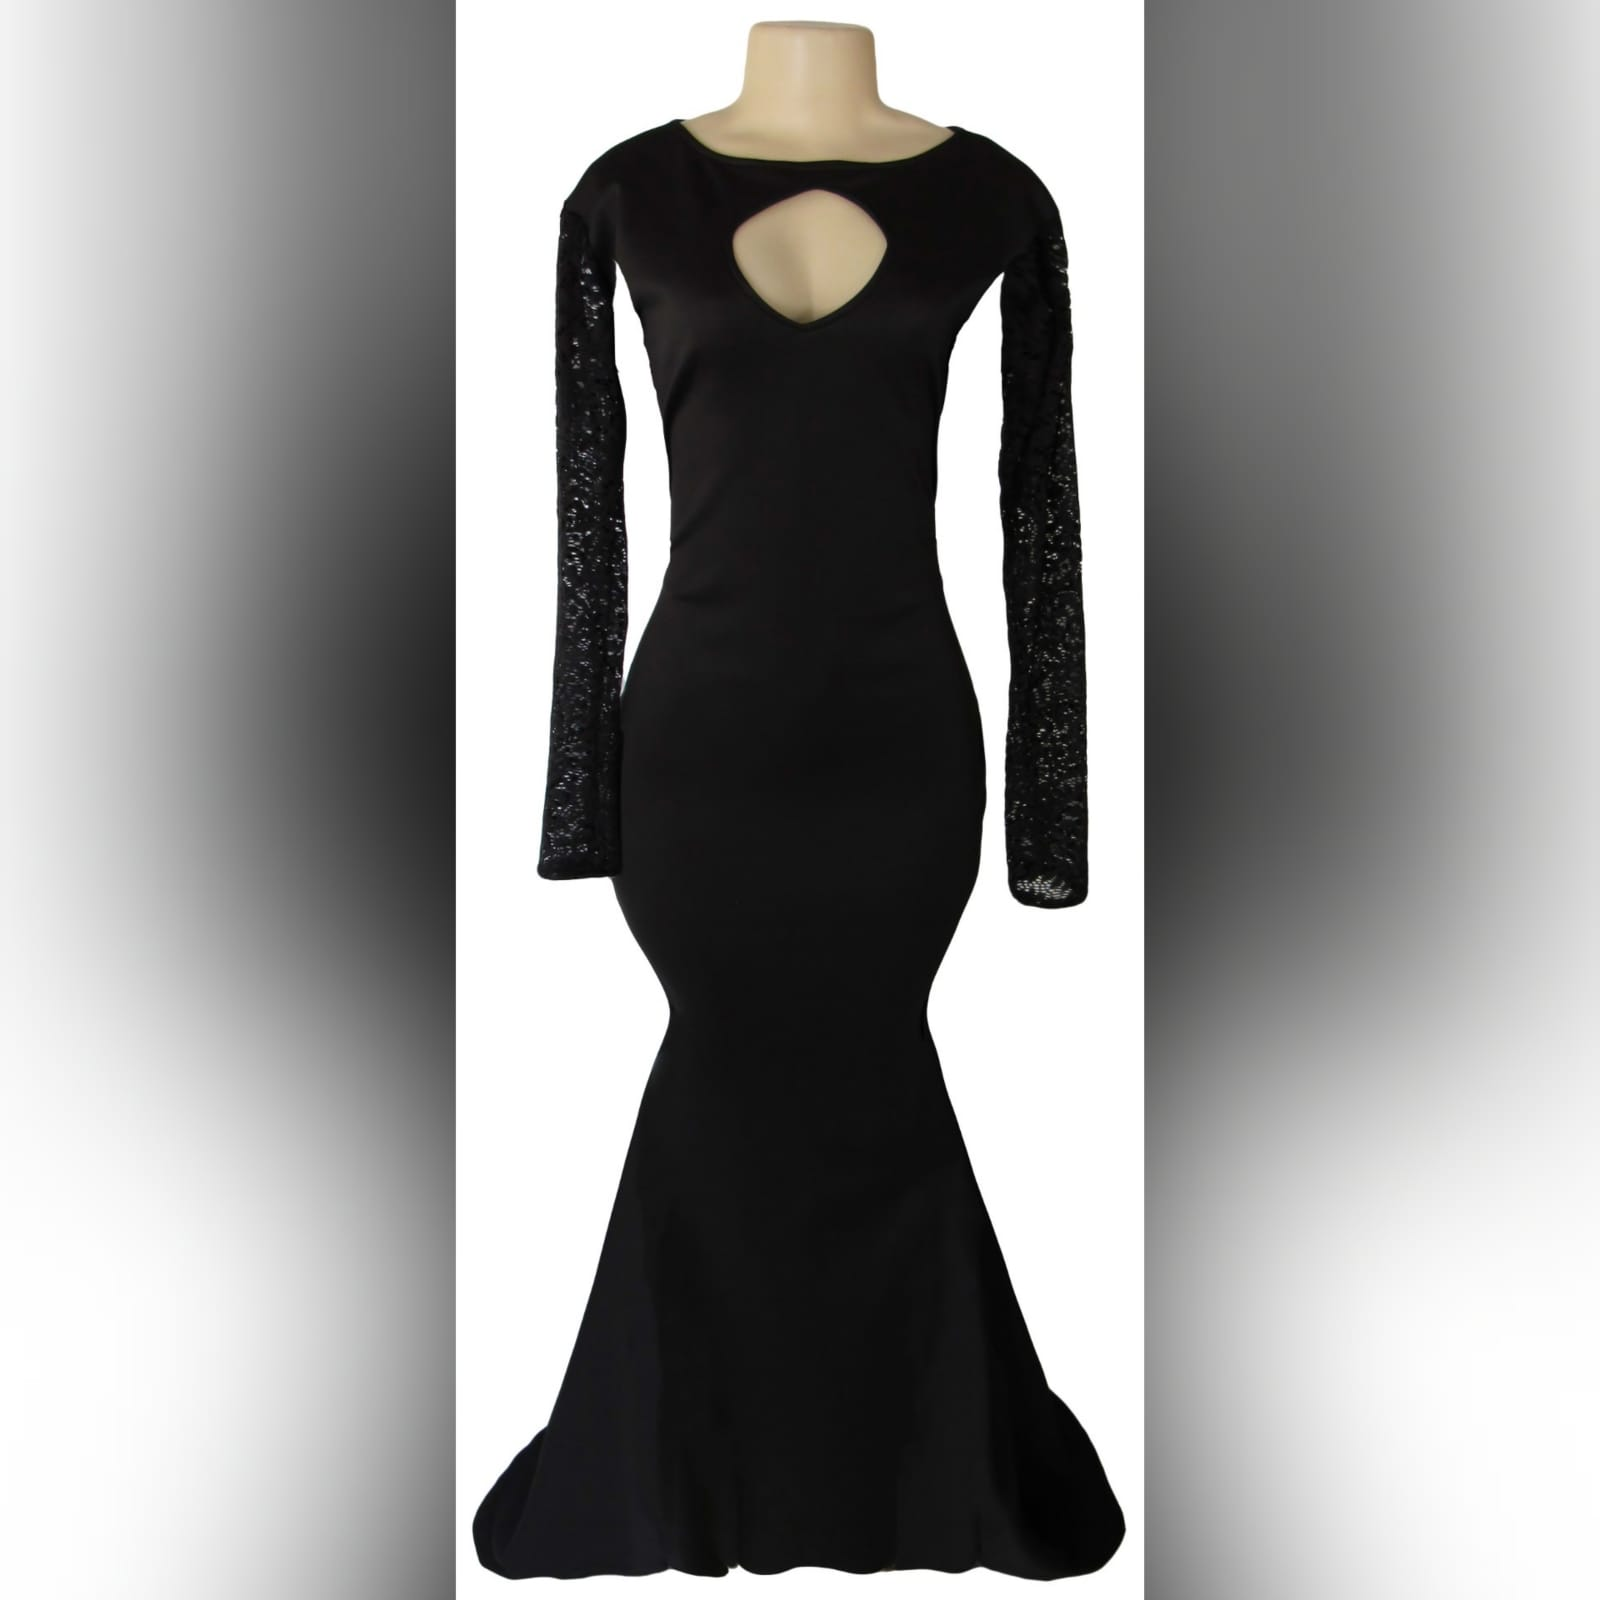 Black soft mermaid formal dress 1 black soft mermaid formal dress with sheer lace sleeves and a diamond shaped cleavage opening with a train.